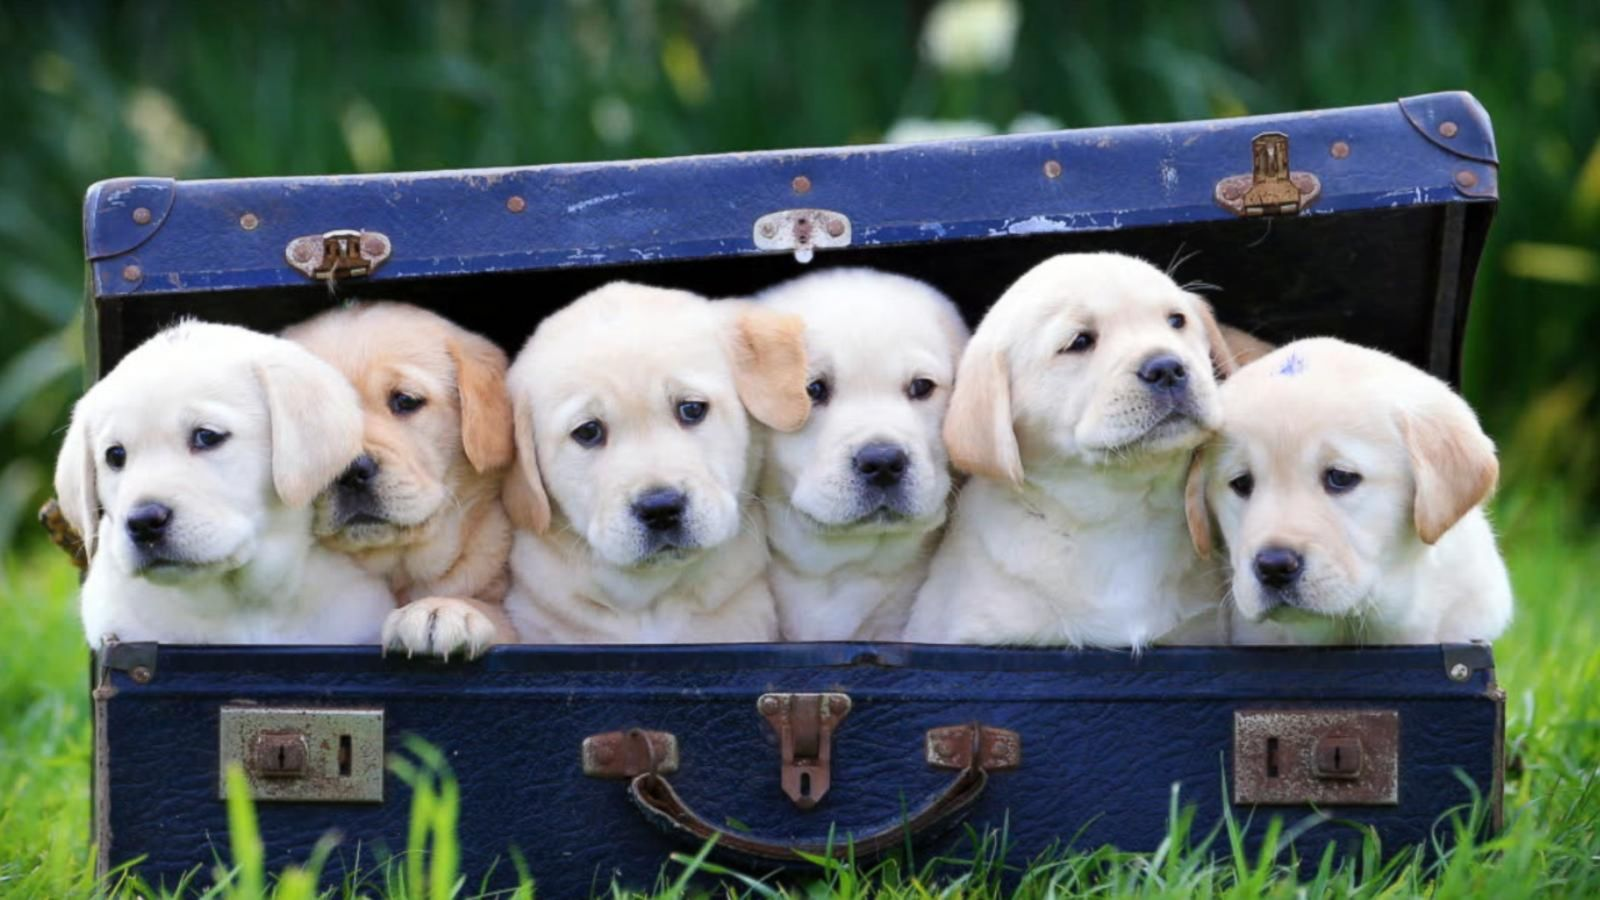 VIDEO: The History of Dogs as Pets